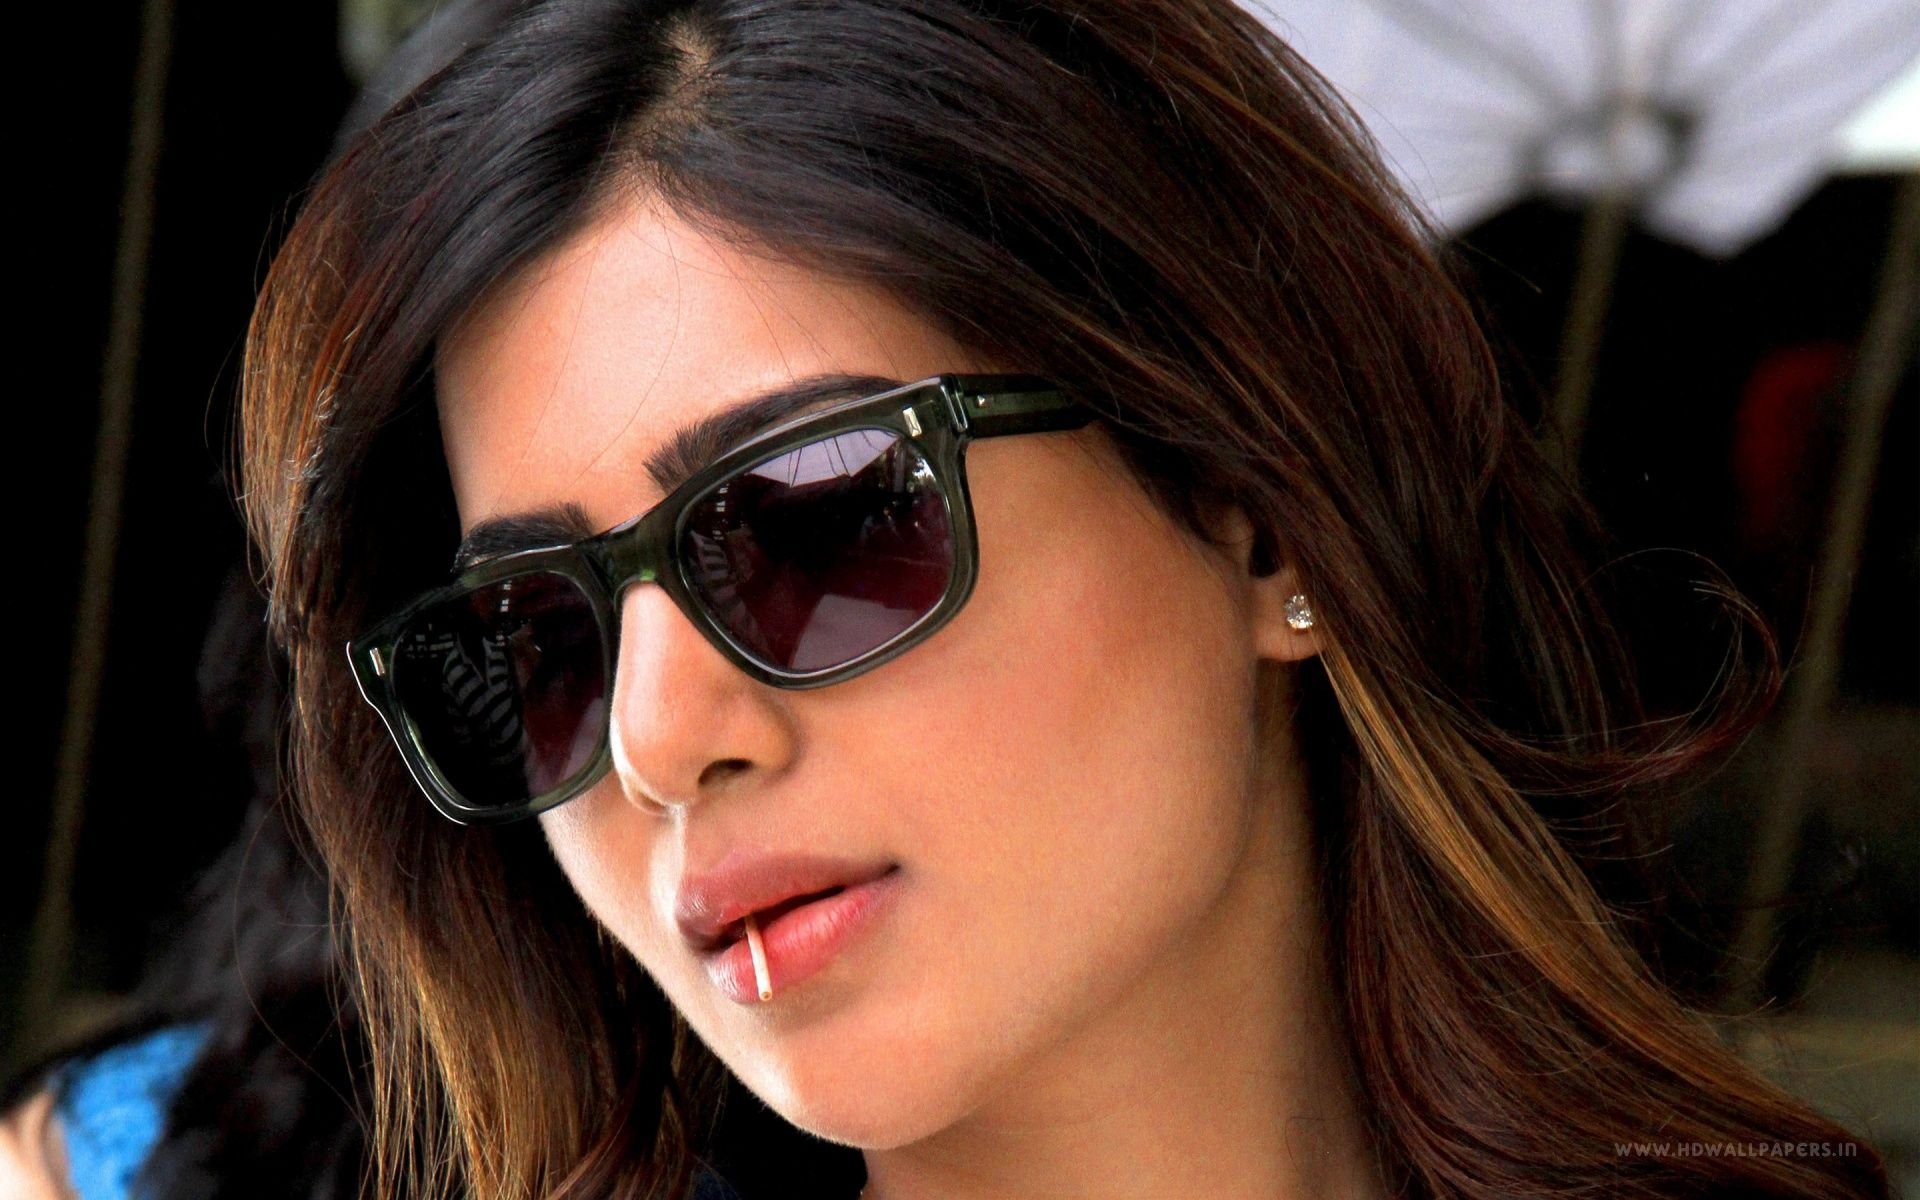 bollywood actors and actresses - Bing Images | bollywood actors ...